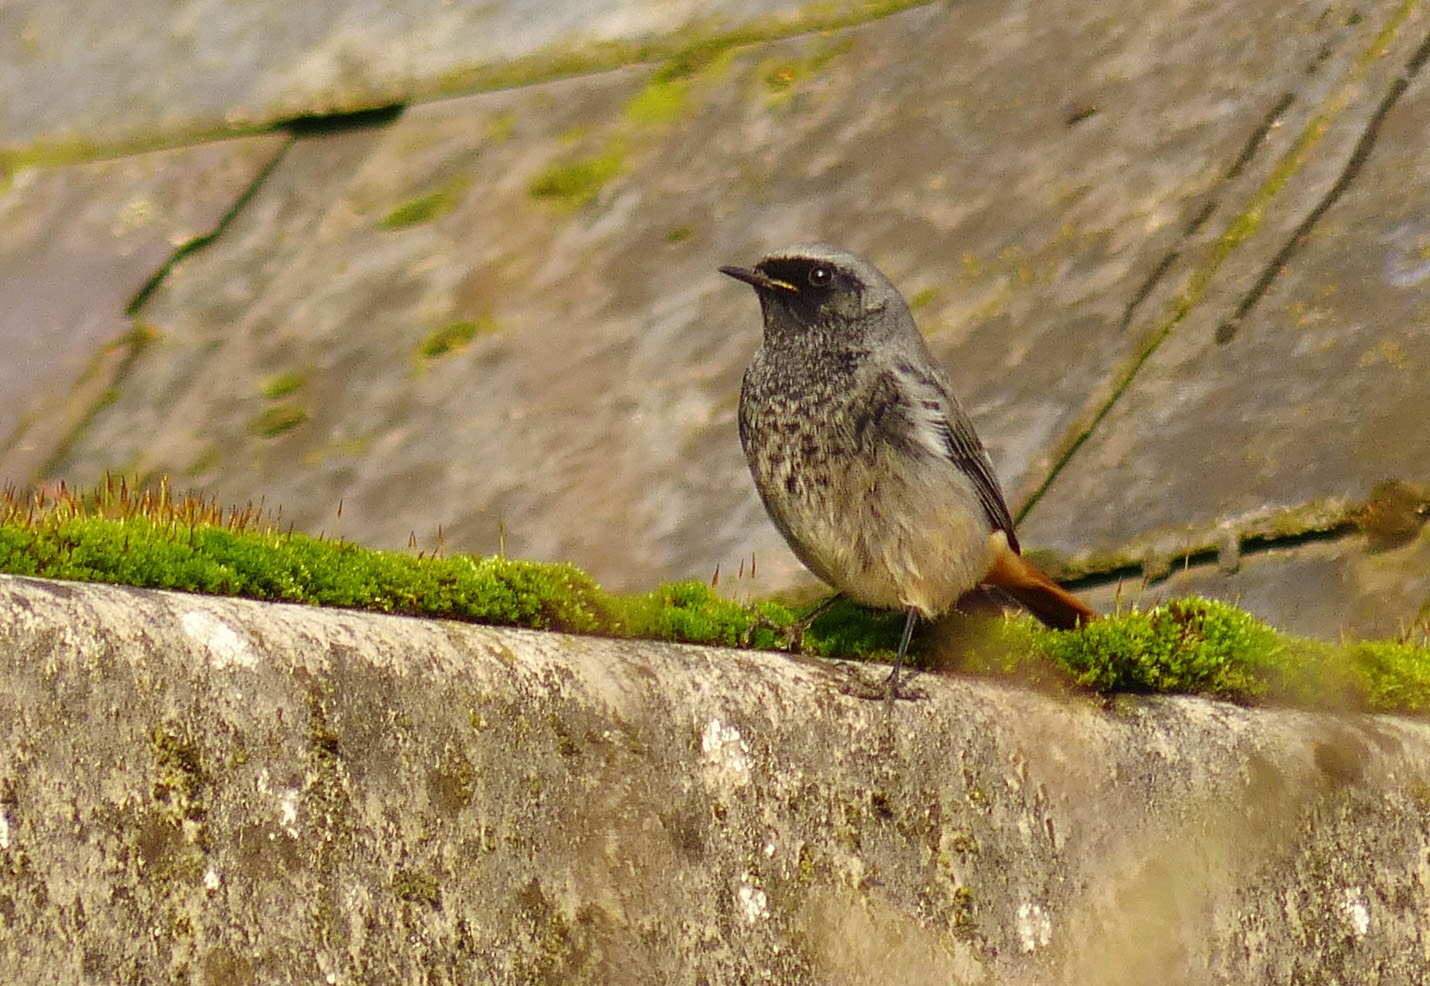 Black Redstart at Feathers, Salehurst, East Sussex